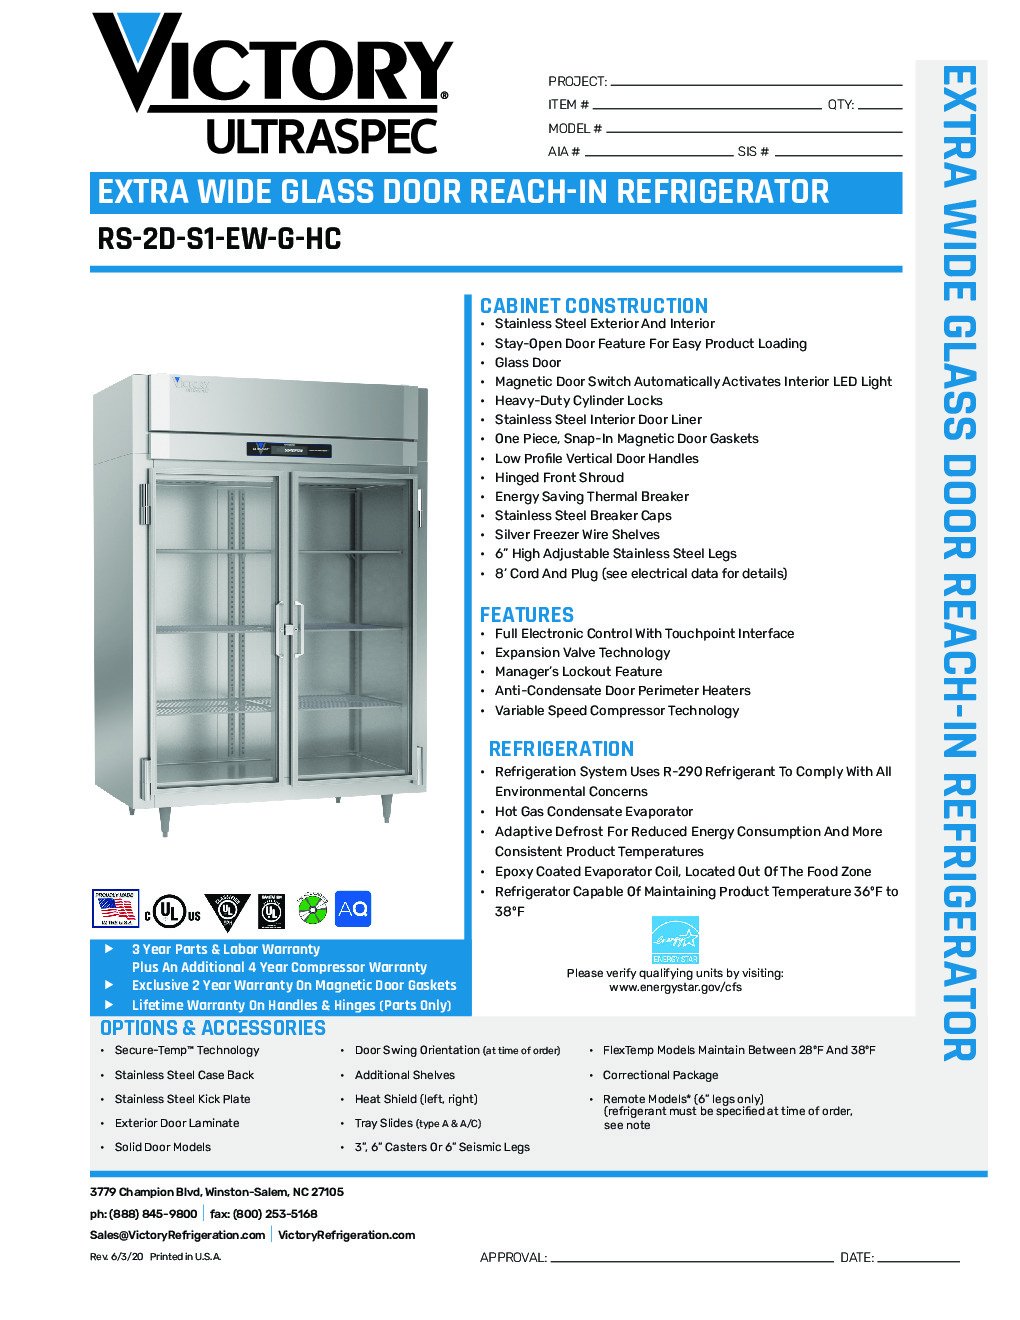 Victory RS-2D-S1-EW-G-HC Reach-In Refrigerator